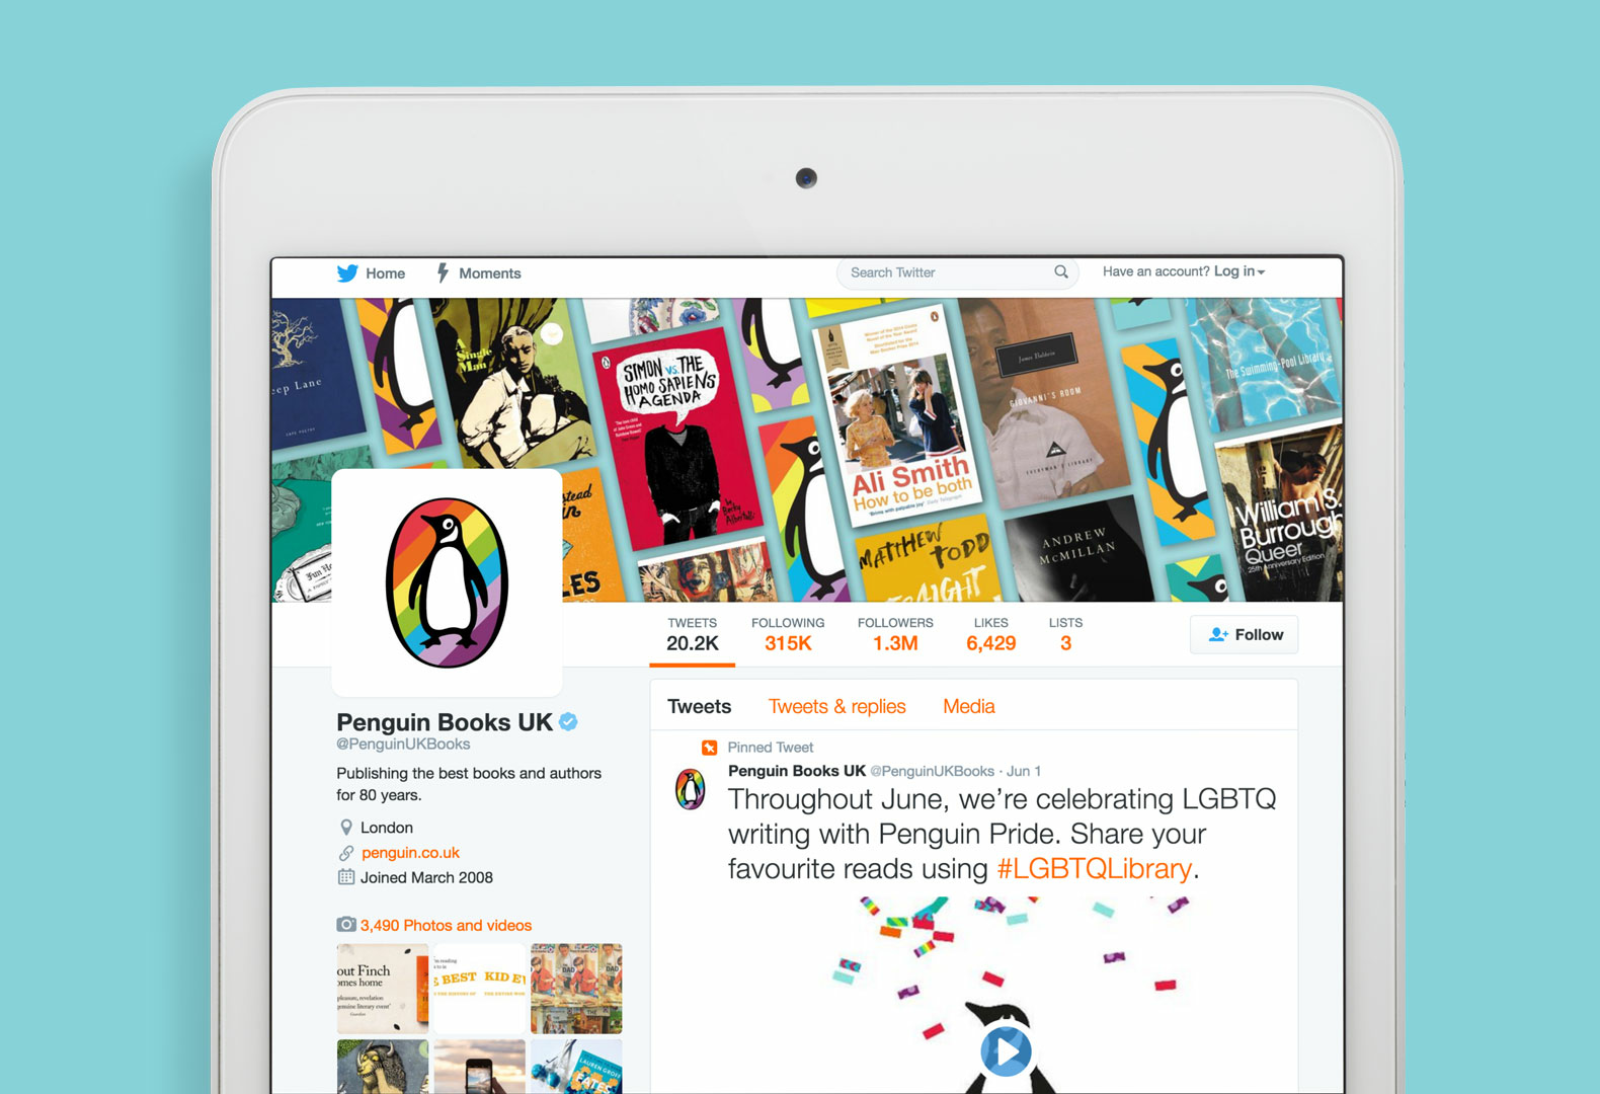 Twitter page social media assets for Penguin Pride — banner background and avatar.